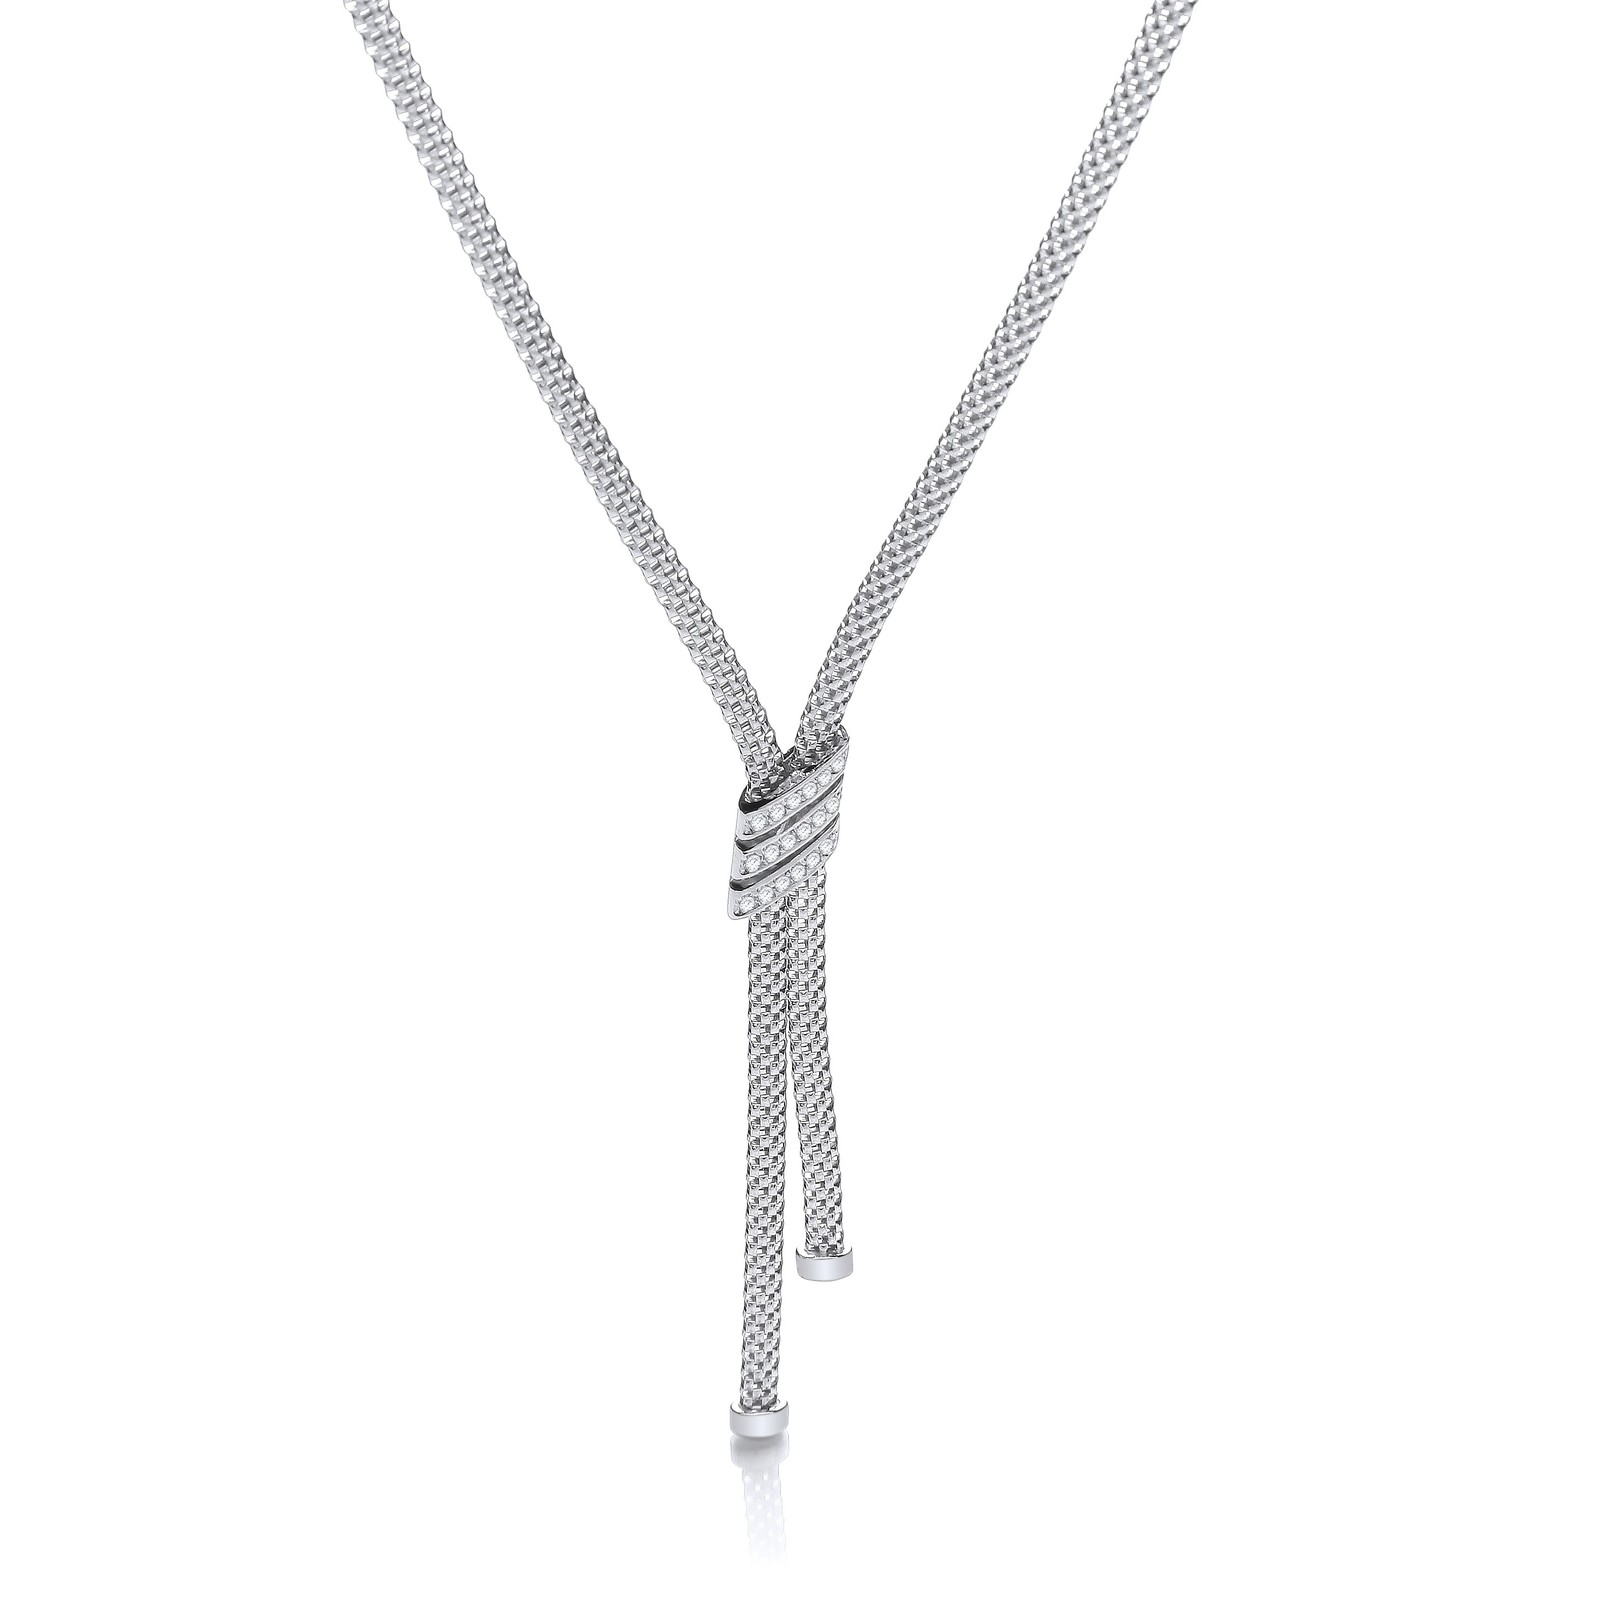 Necklace with 3 Stripes Cz's 17""